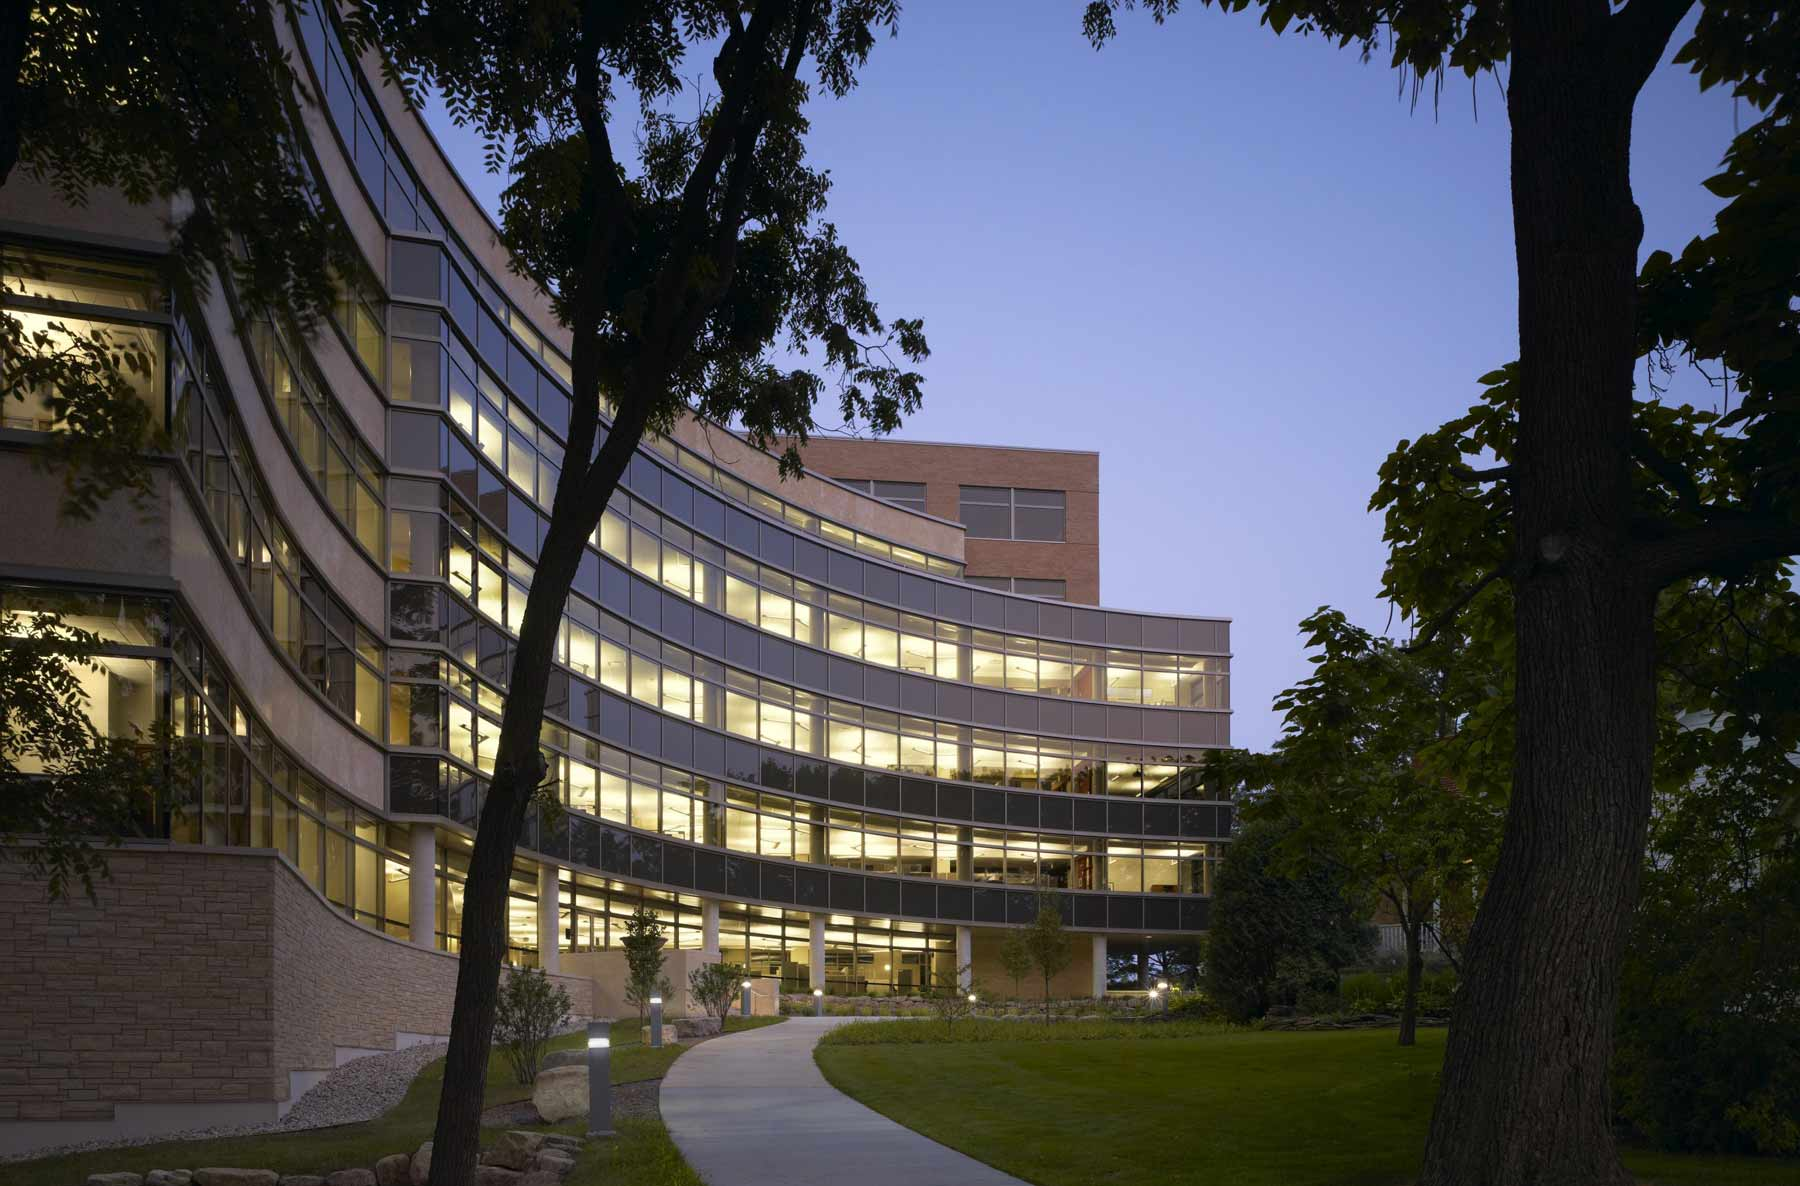 University of Wisconsin Medical Foundation - Centennial Building